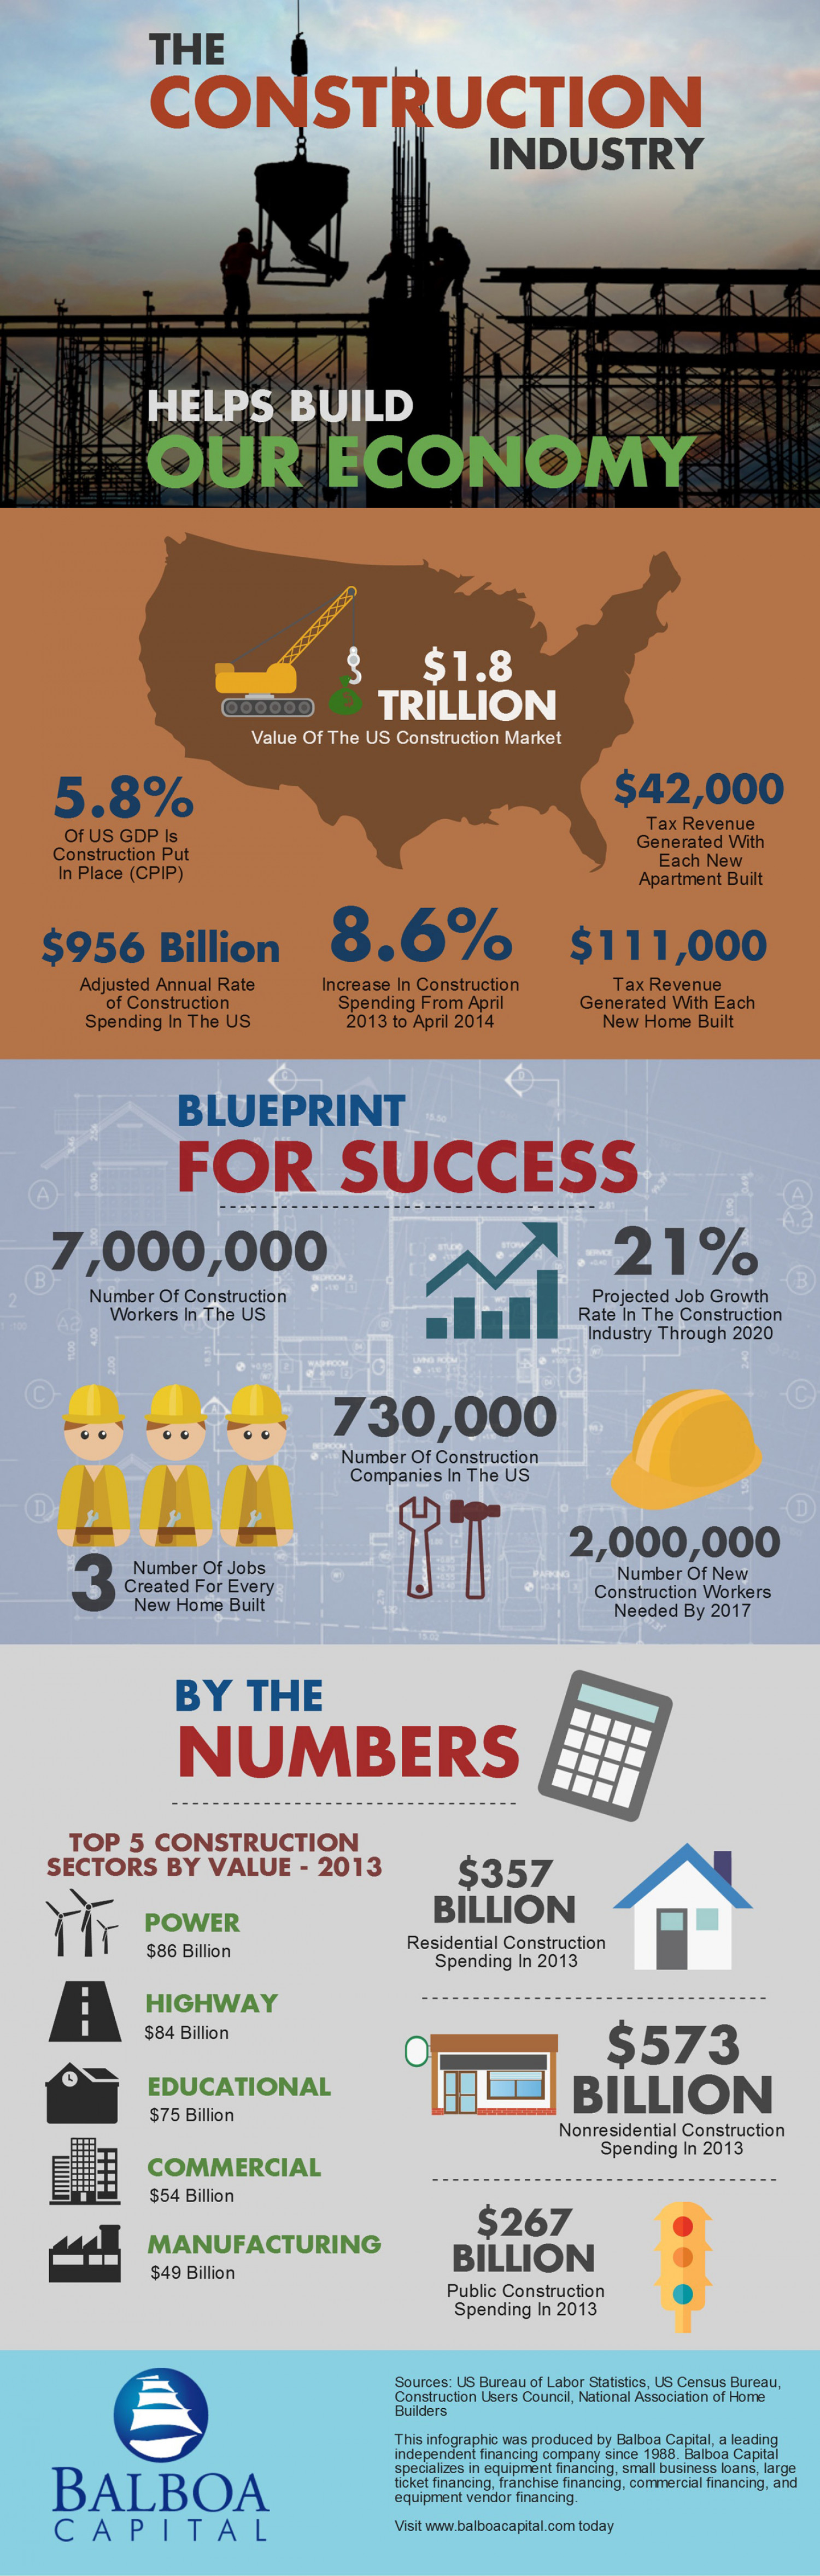 US Construction Industry Infographic